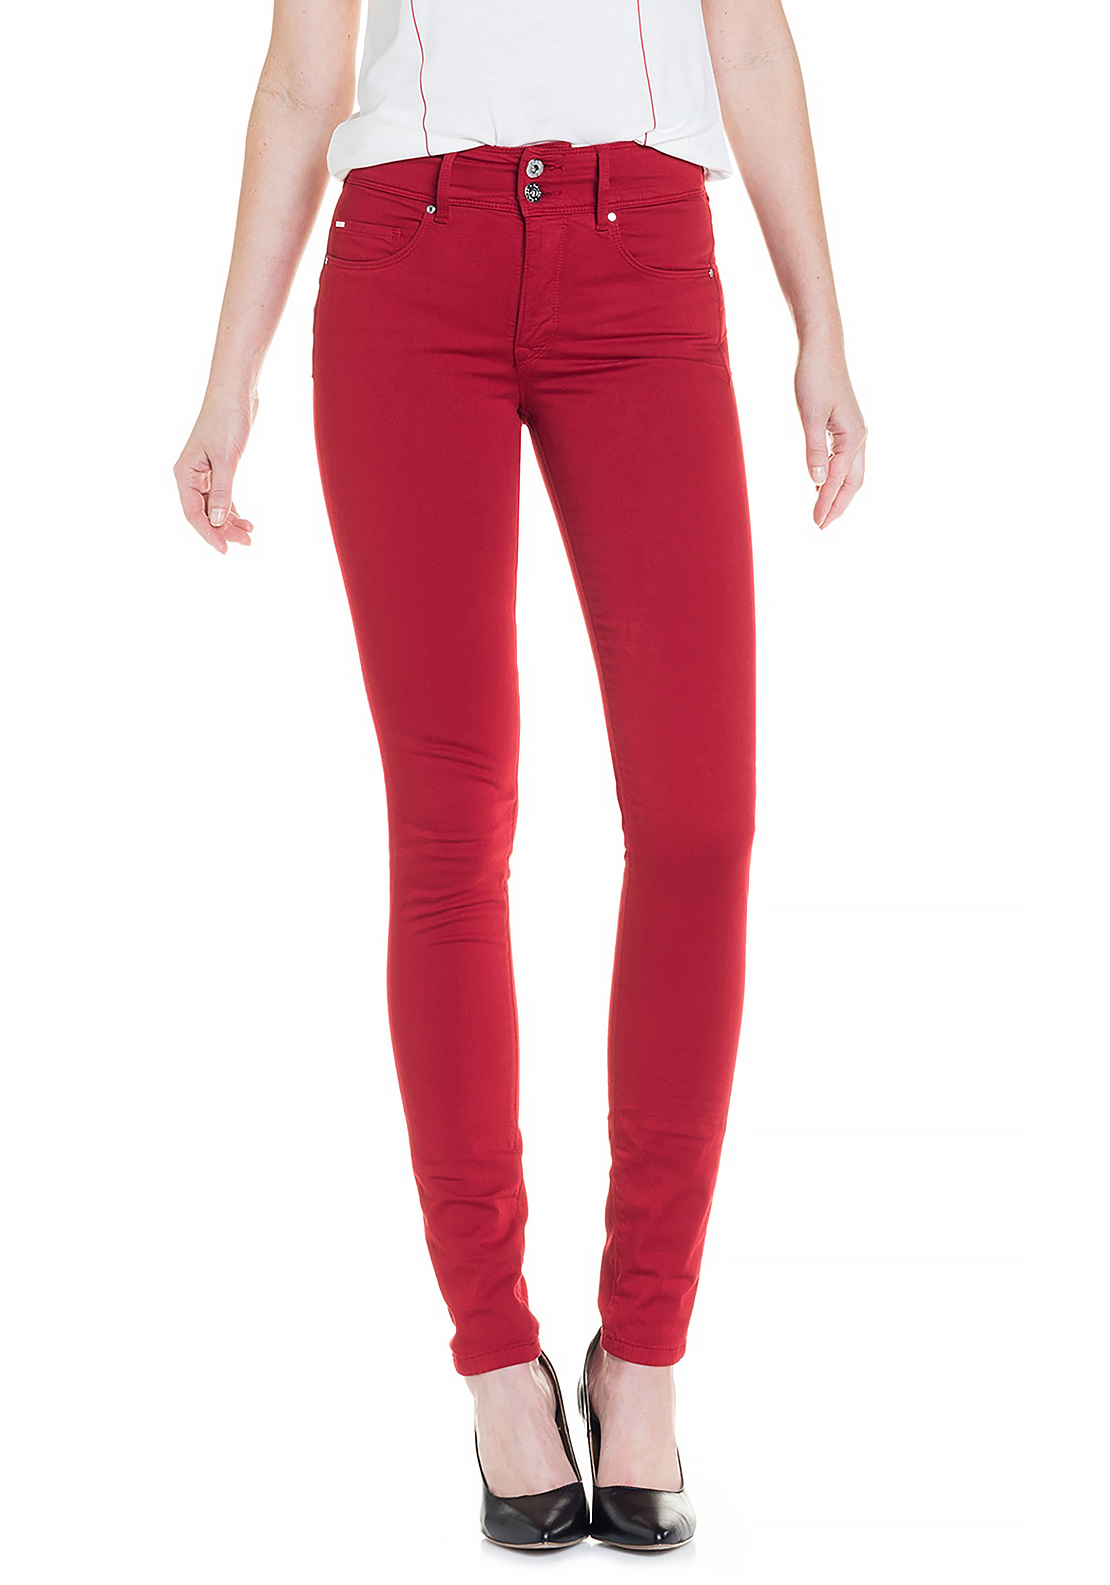 Salsa Secret High Waist Push In Skinny Jeans, Red